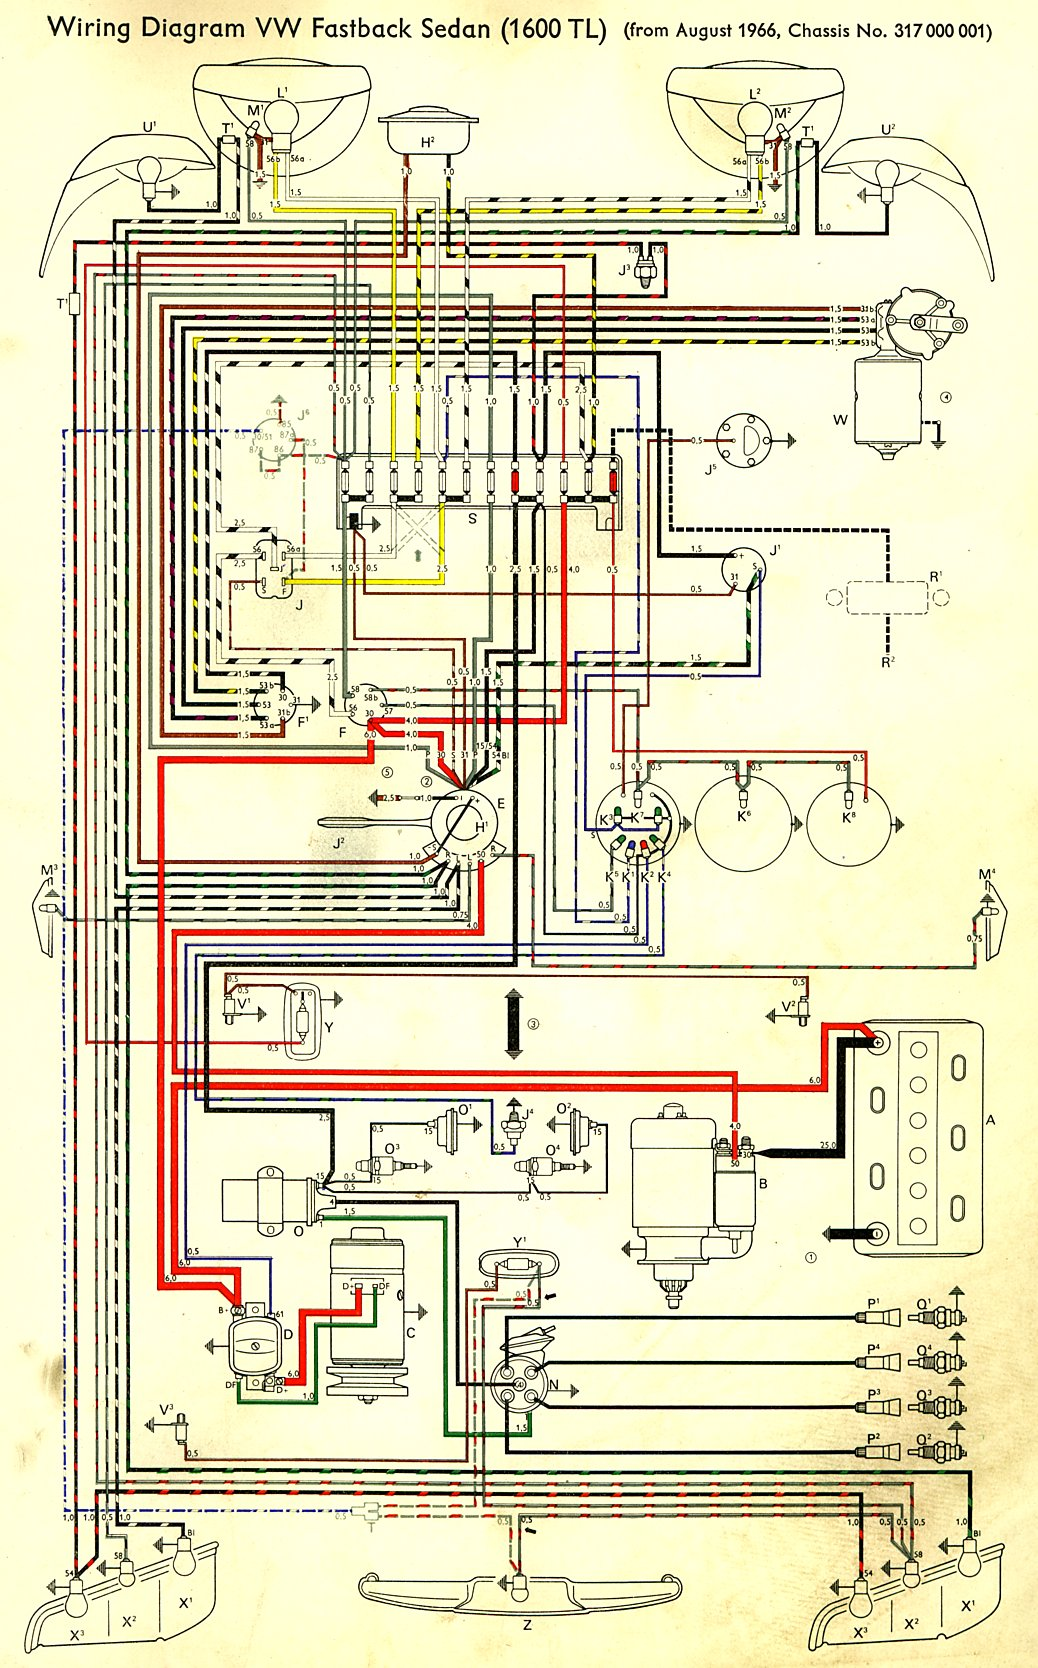 Type 3 Wiring Diagrams How To Read For Cars